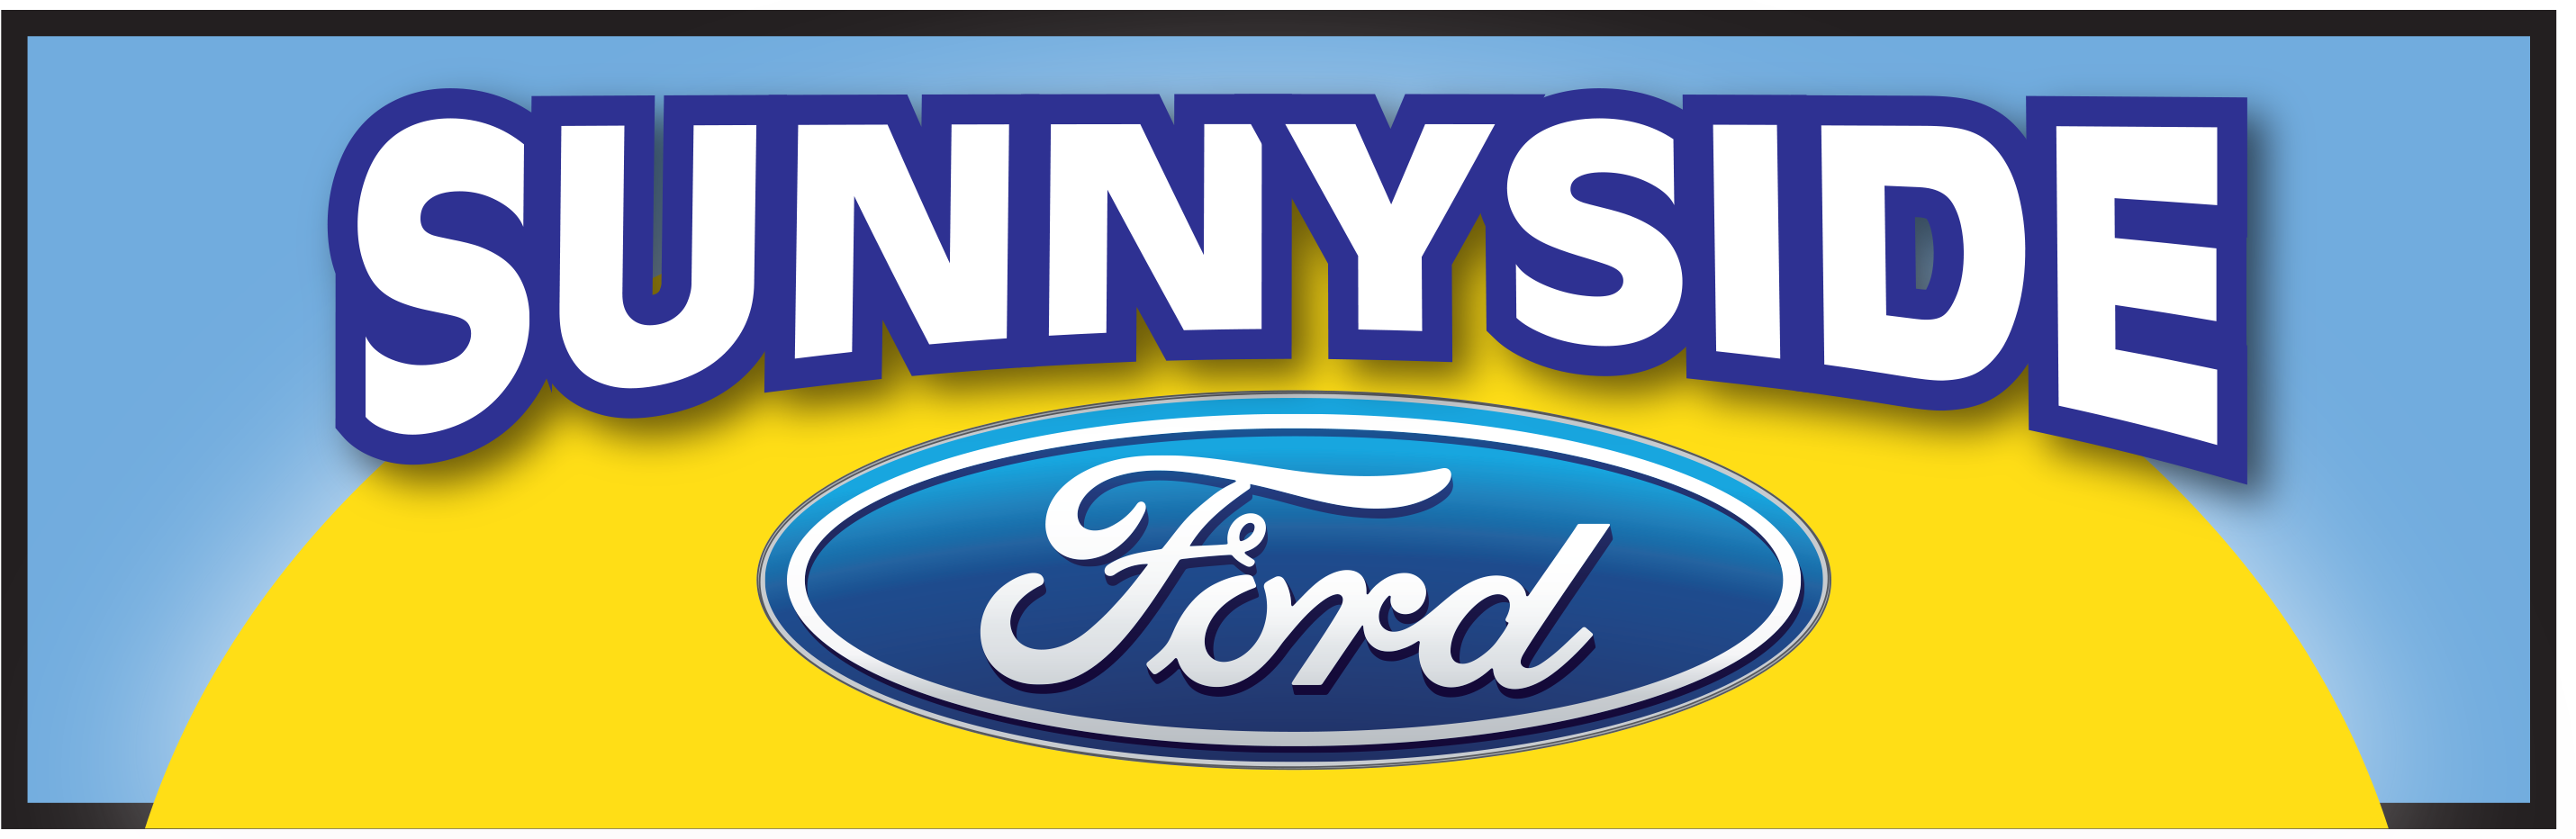 Sunny Side Ford